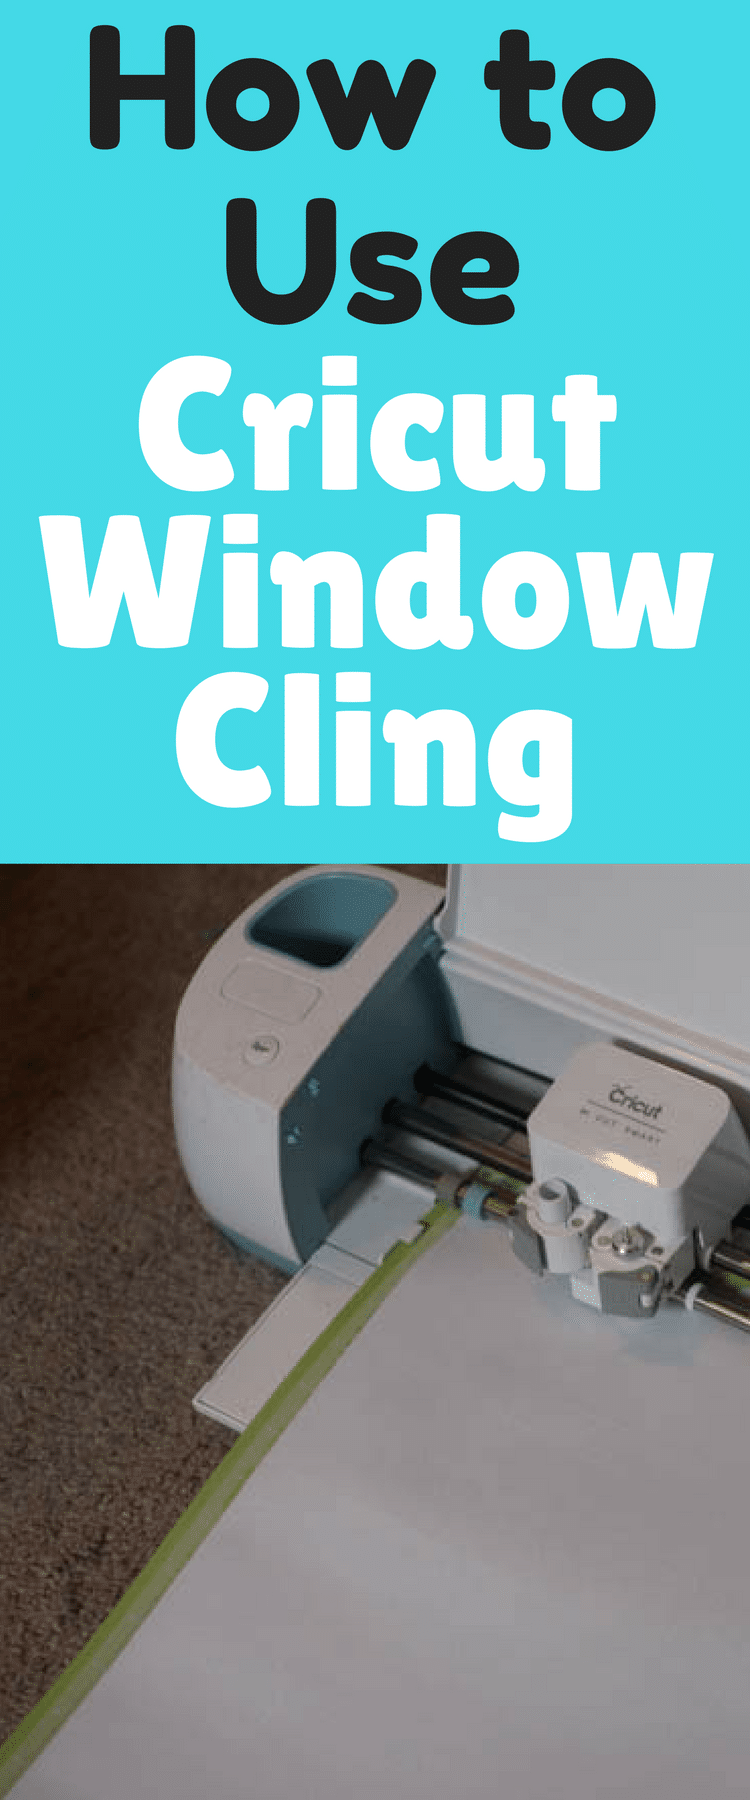 Window Calendar Tutorial With Cricut Window Cling - How to make window decals with cricut